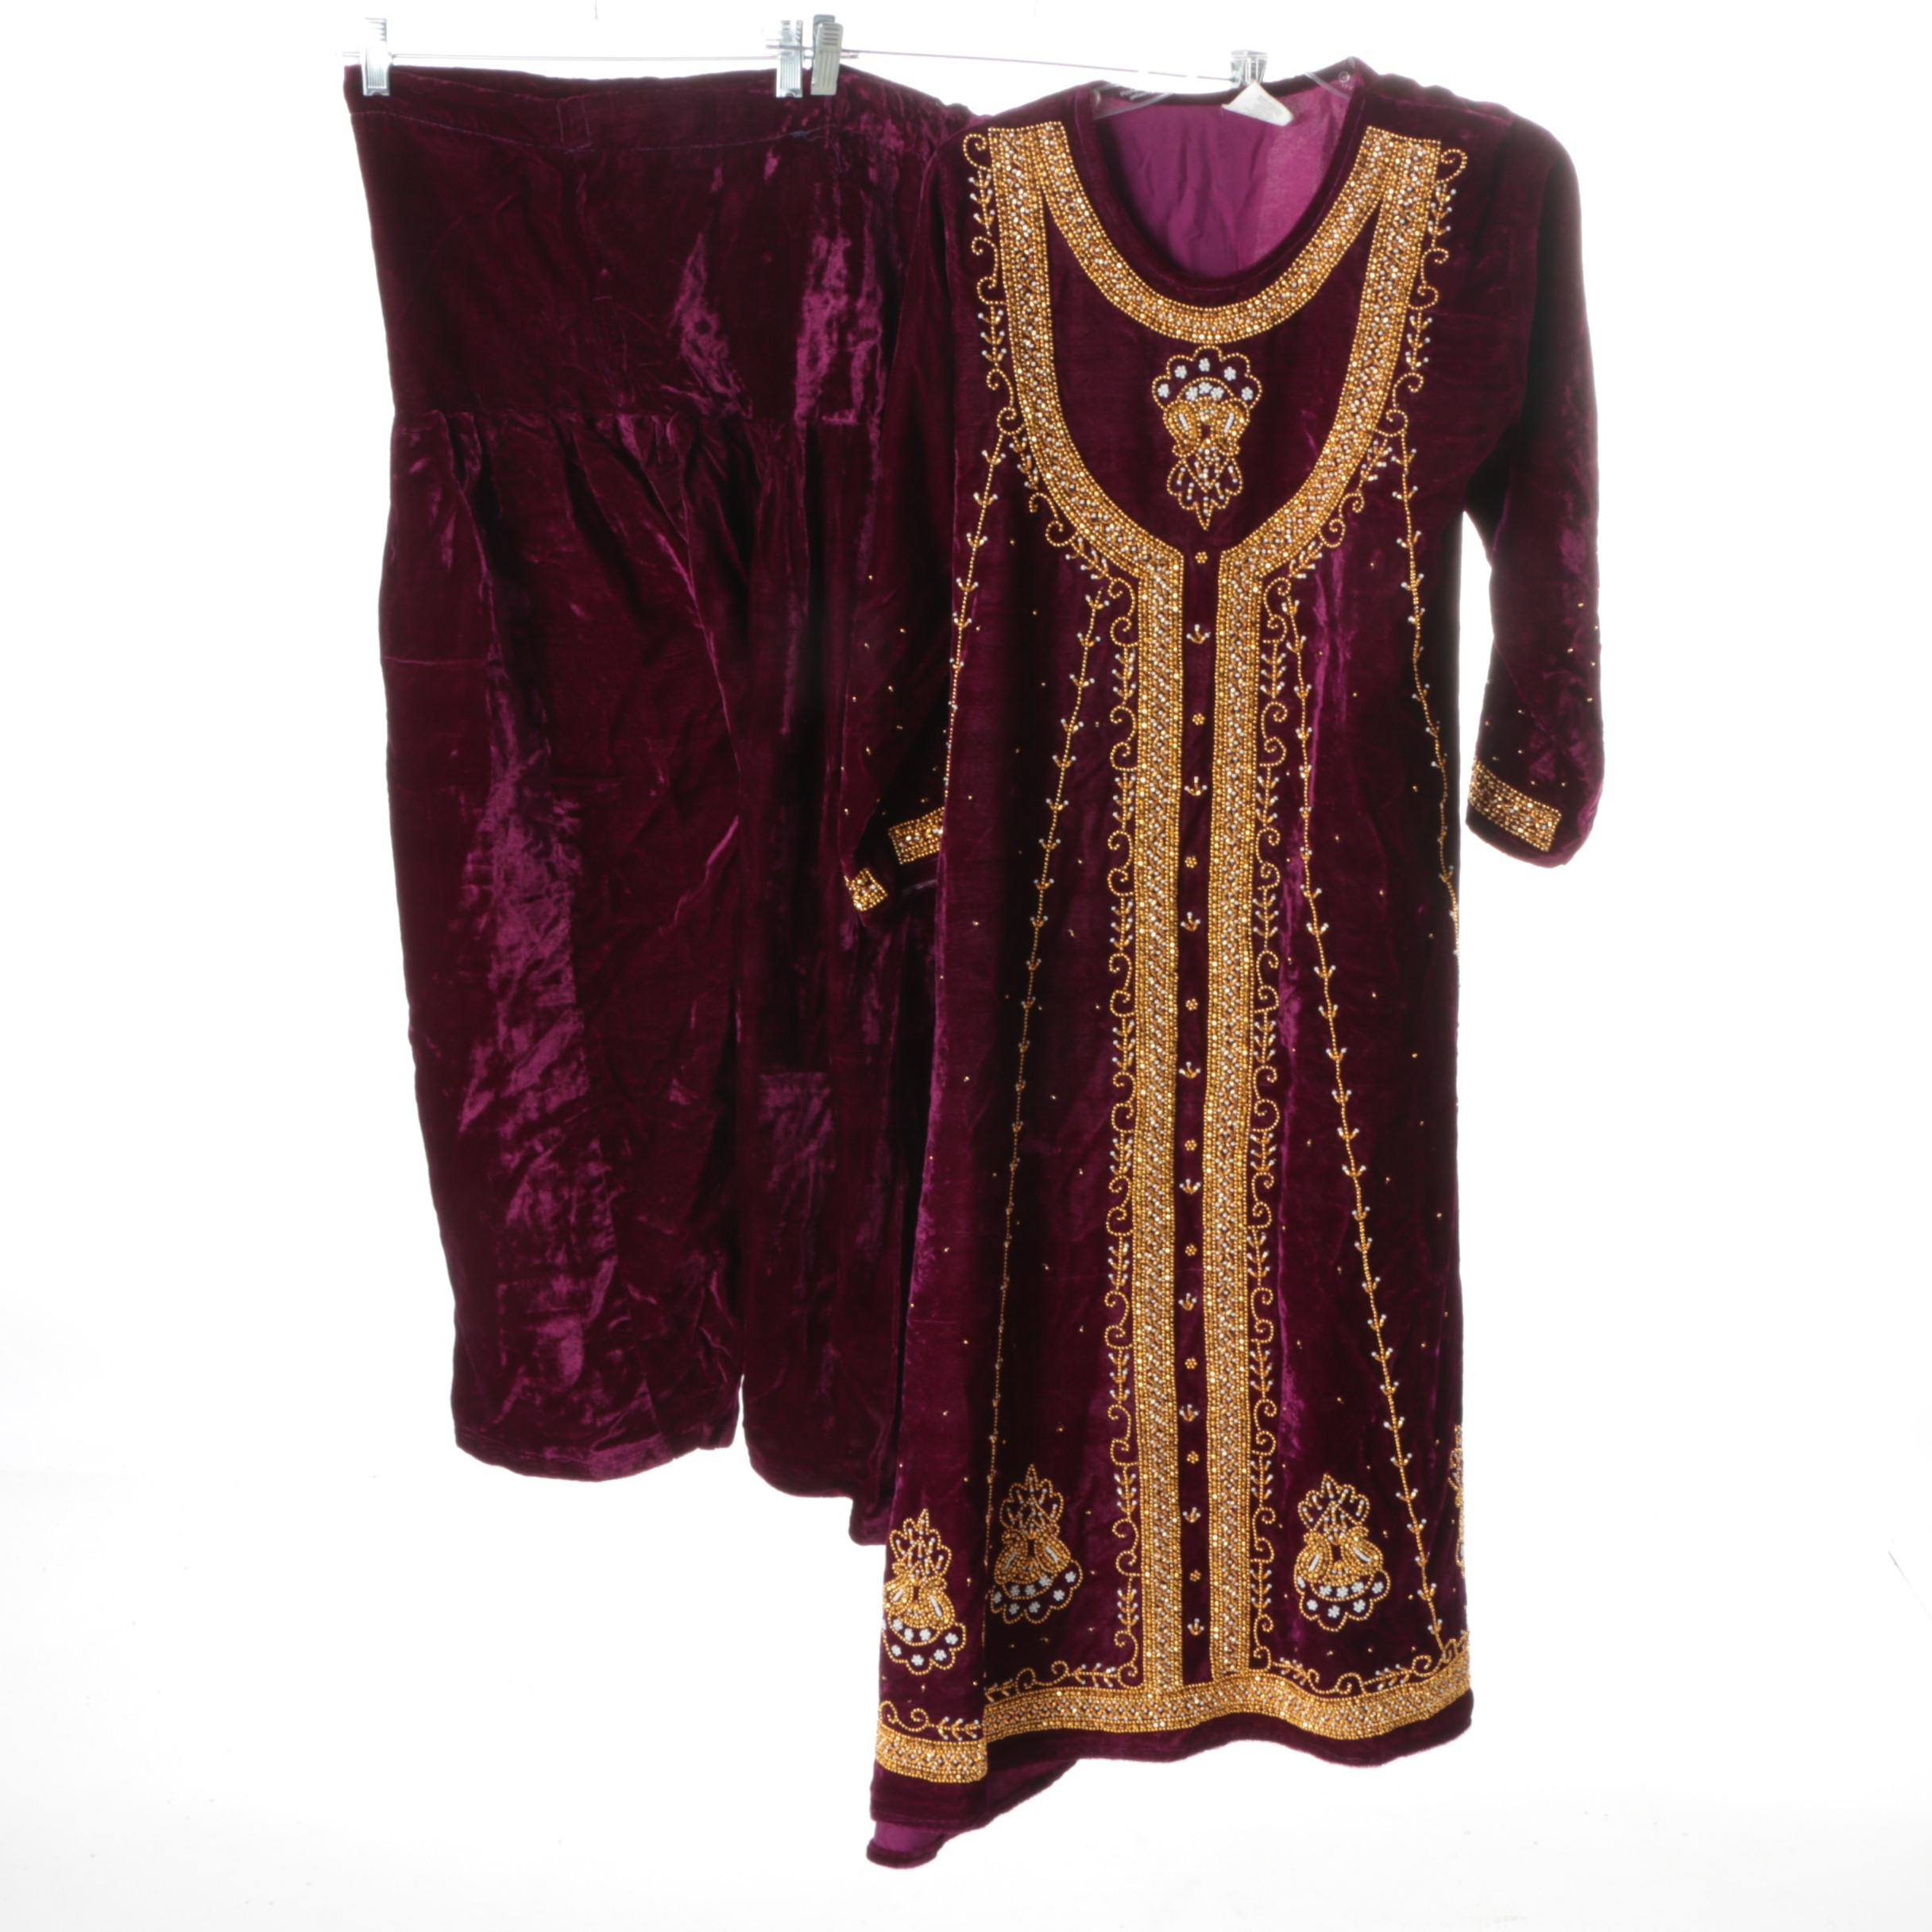 Women's South Asian Style Velvet Beaded Suit Set